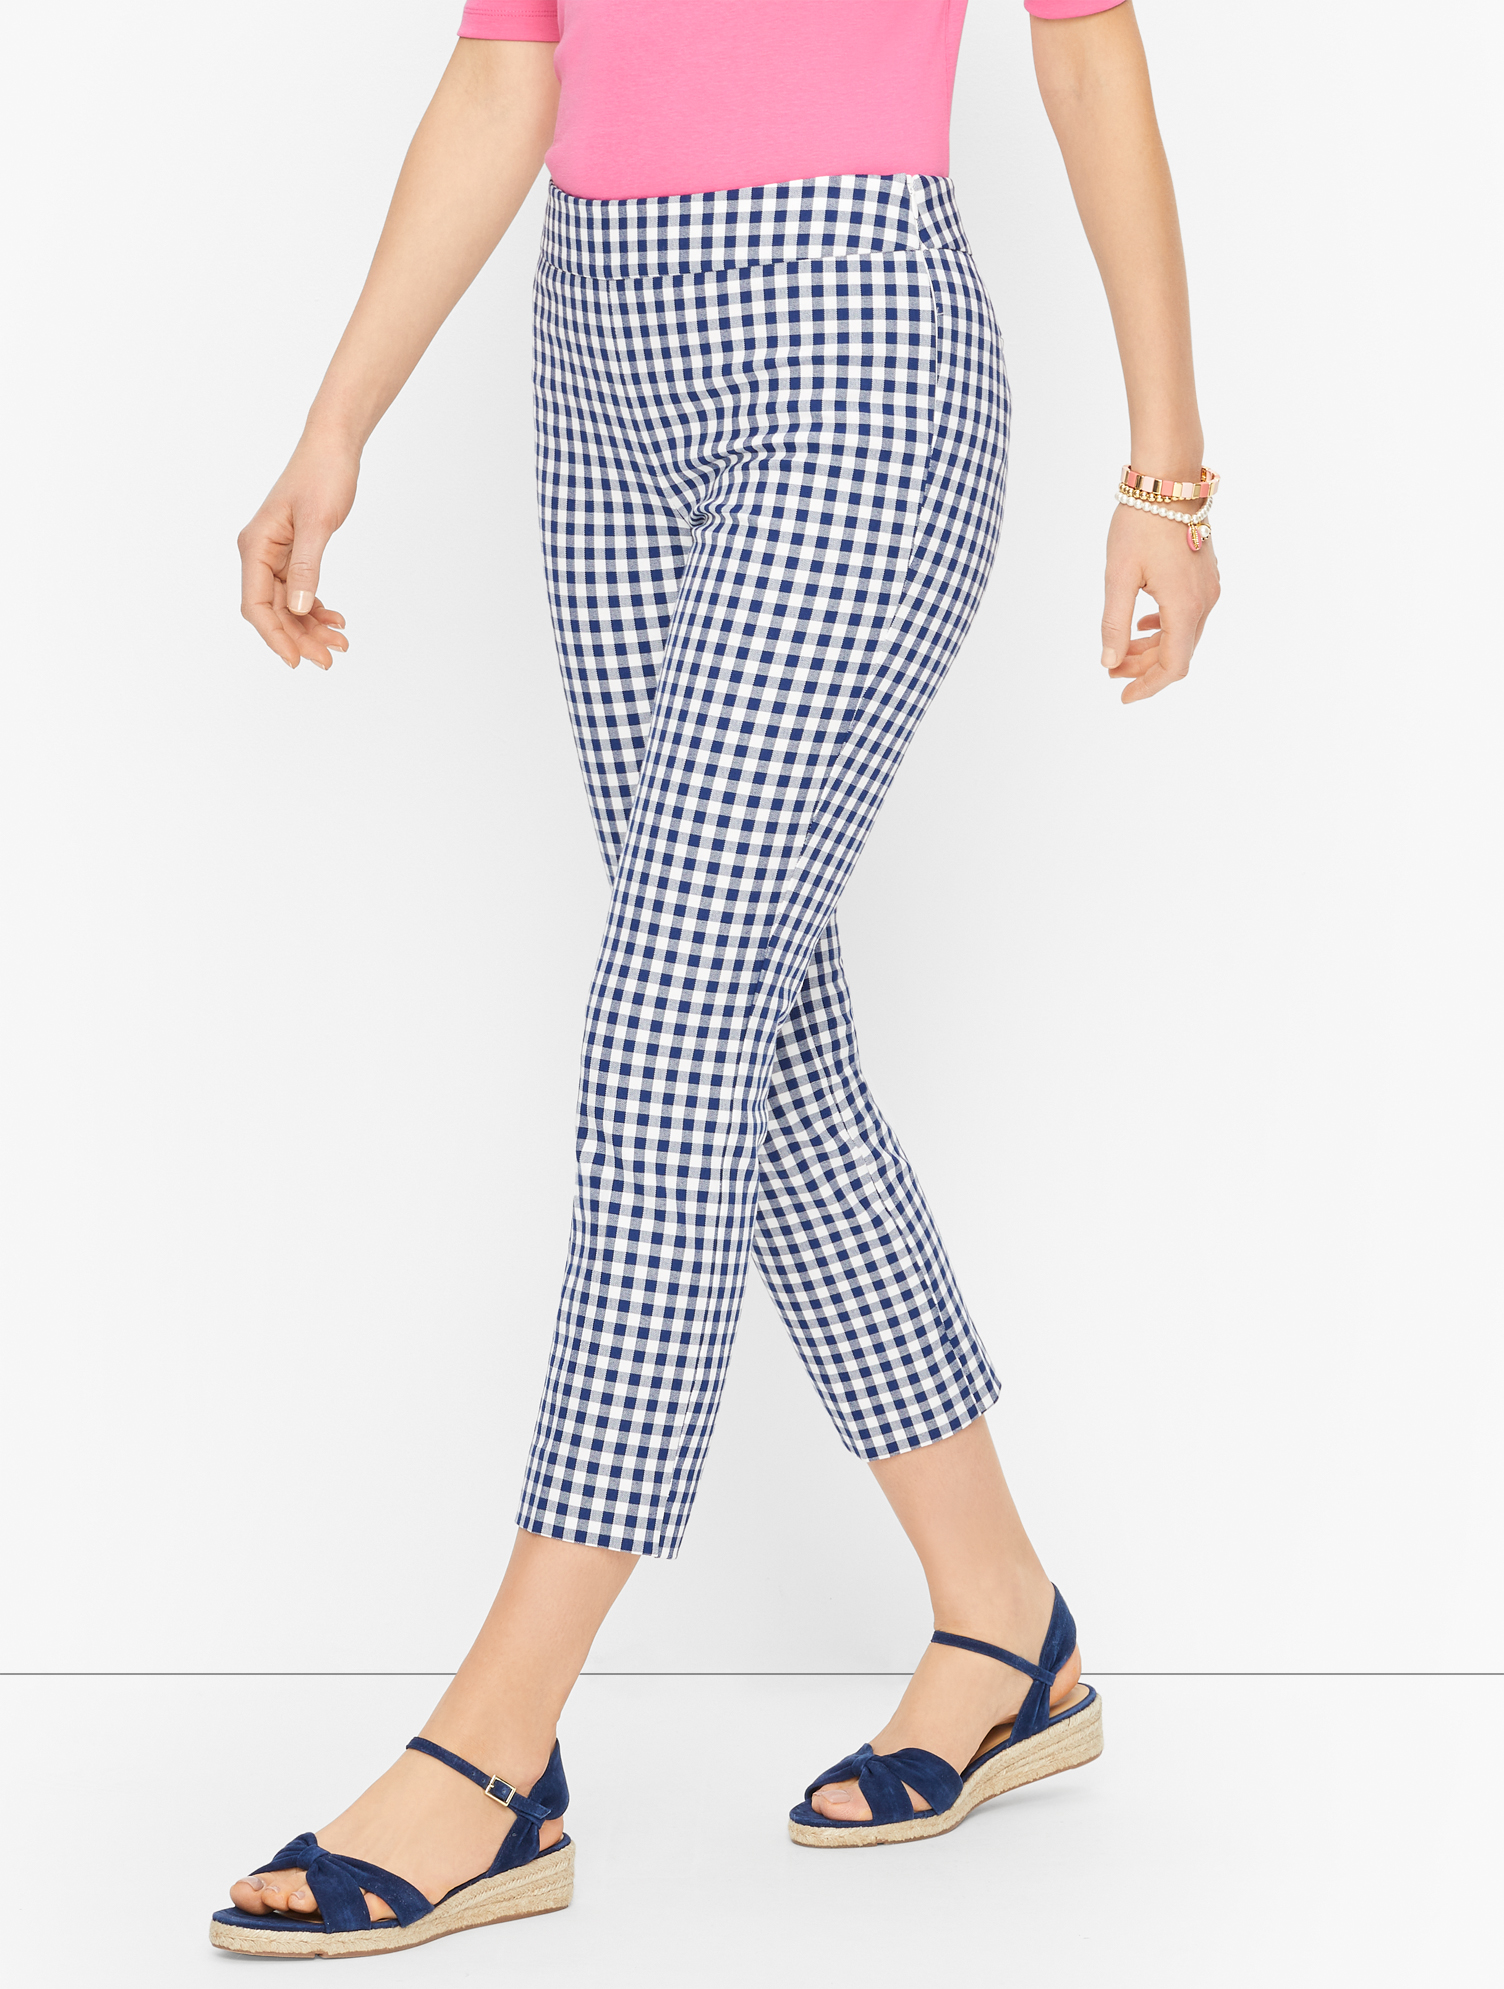 1960s Pants – Top 10 Styles for Women Talbots Chatham Crops Pants - Gingham - WhiteInk - 16 $99.00 AT vintagedancer.com